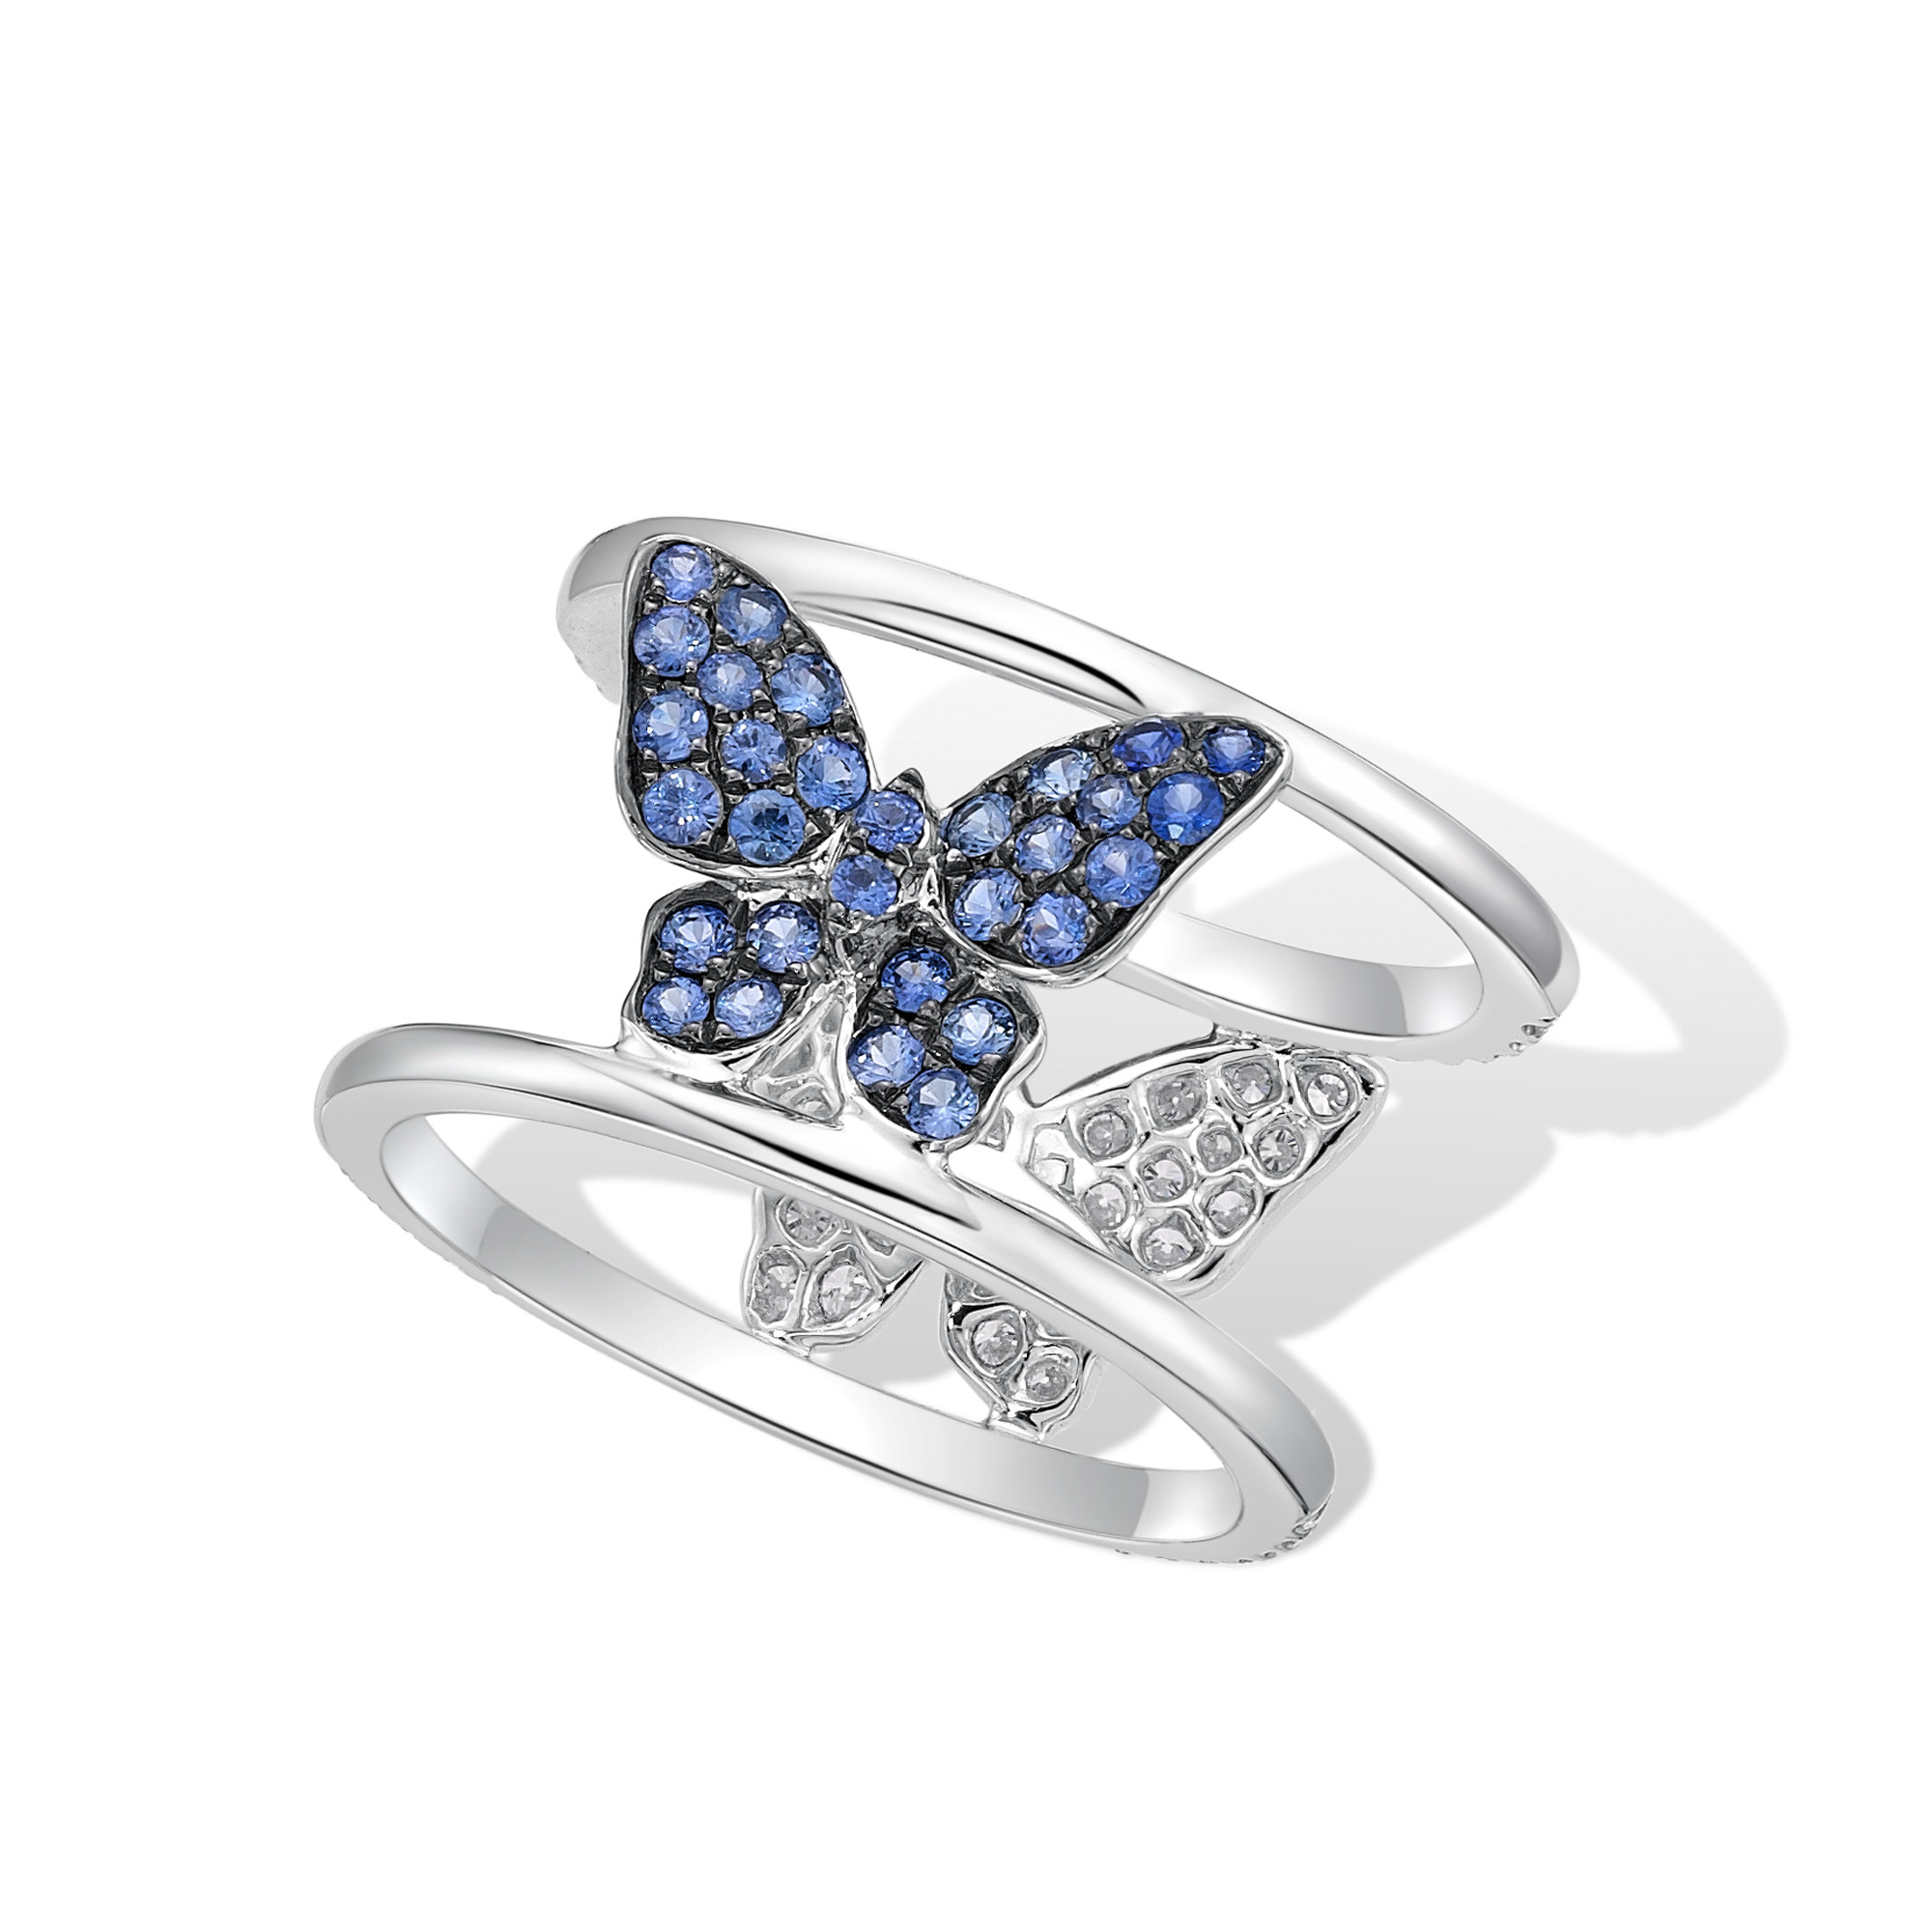 Indigo Butterfly Maiden Ring  Jessica Fong. Concordia University Rings. Warm Engagement Rings. Triangle Rings. Wooden Engagement Rings. Infinity Engagement Rings. Encased Wedding Rings. Roman Shades Rings. Natural Aquamarine Engagement Rings